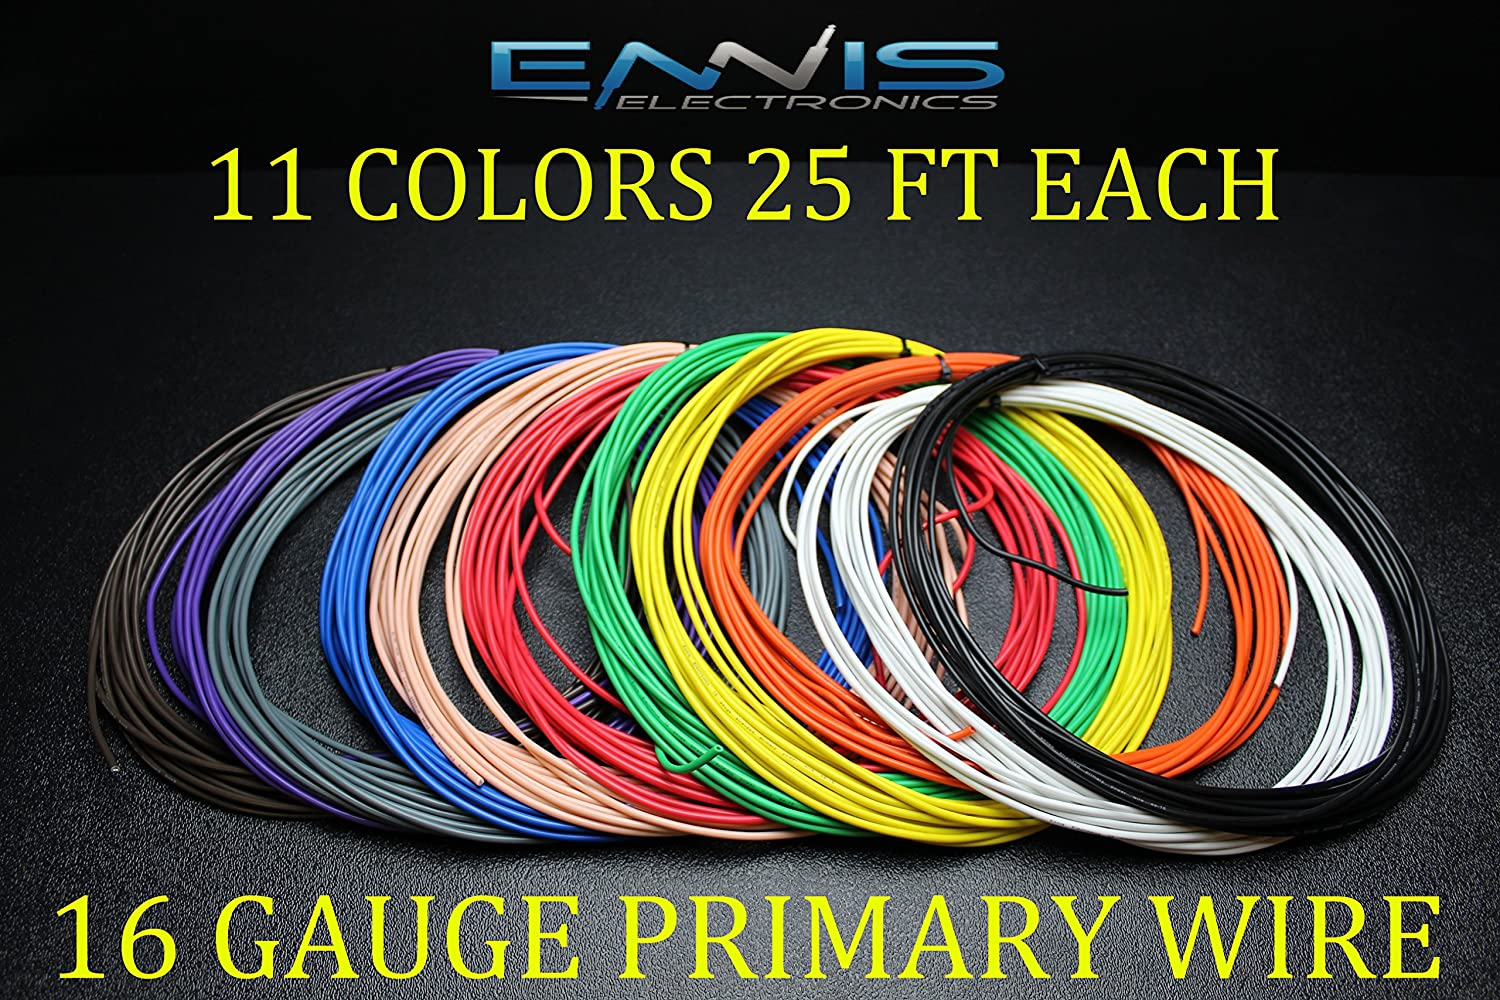 14 Gauge Wire ENNIS ELECTRONICS 25 FT RED 25 FT Black Primary Remote Hook UP AWG Copper CLAD